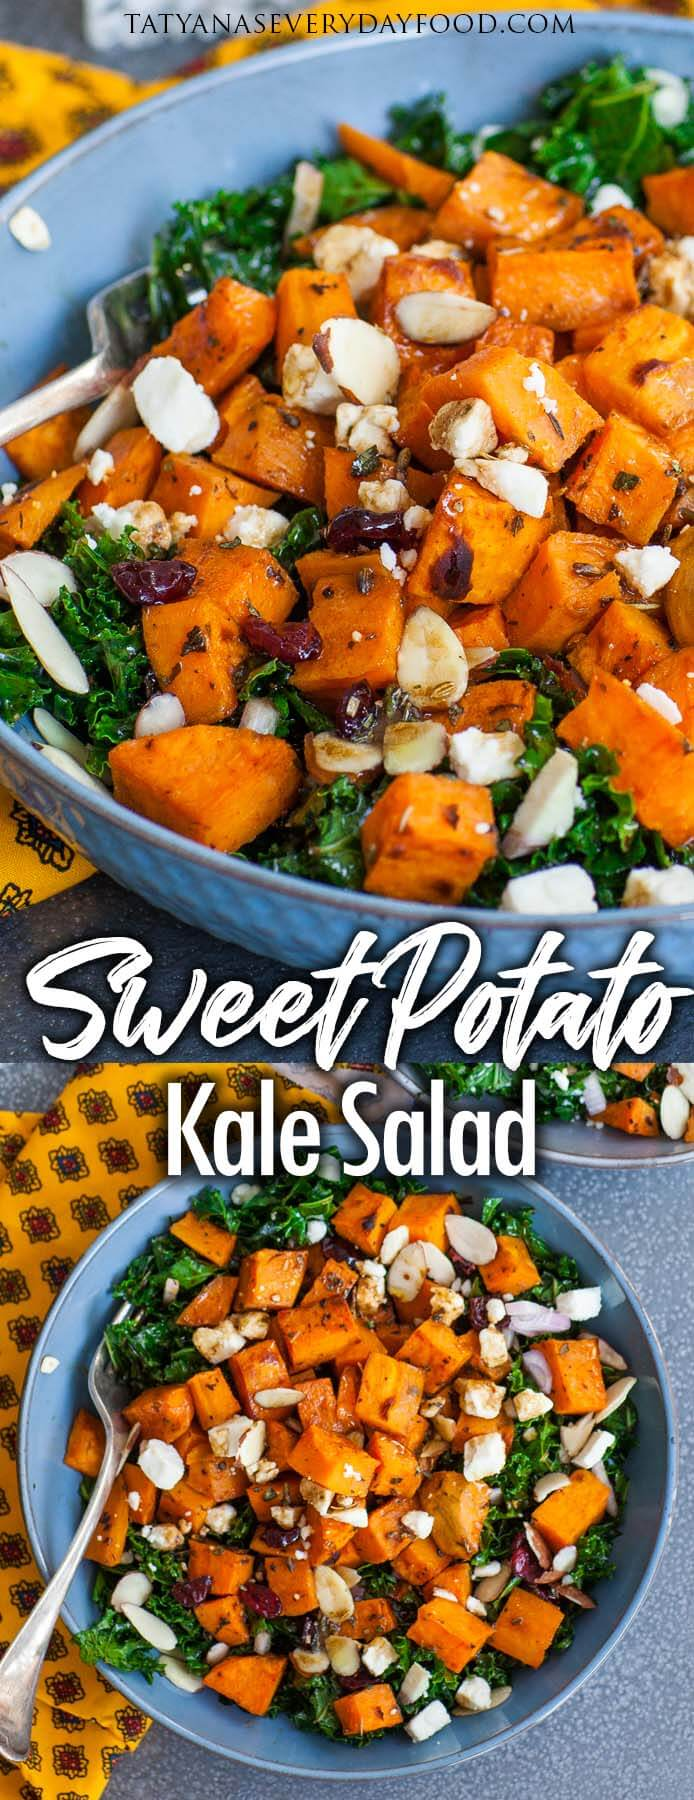 Easy Sweet Potato Kale Salad with video recipe